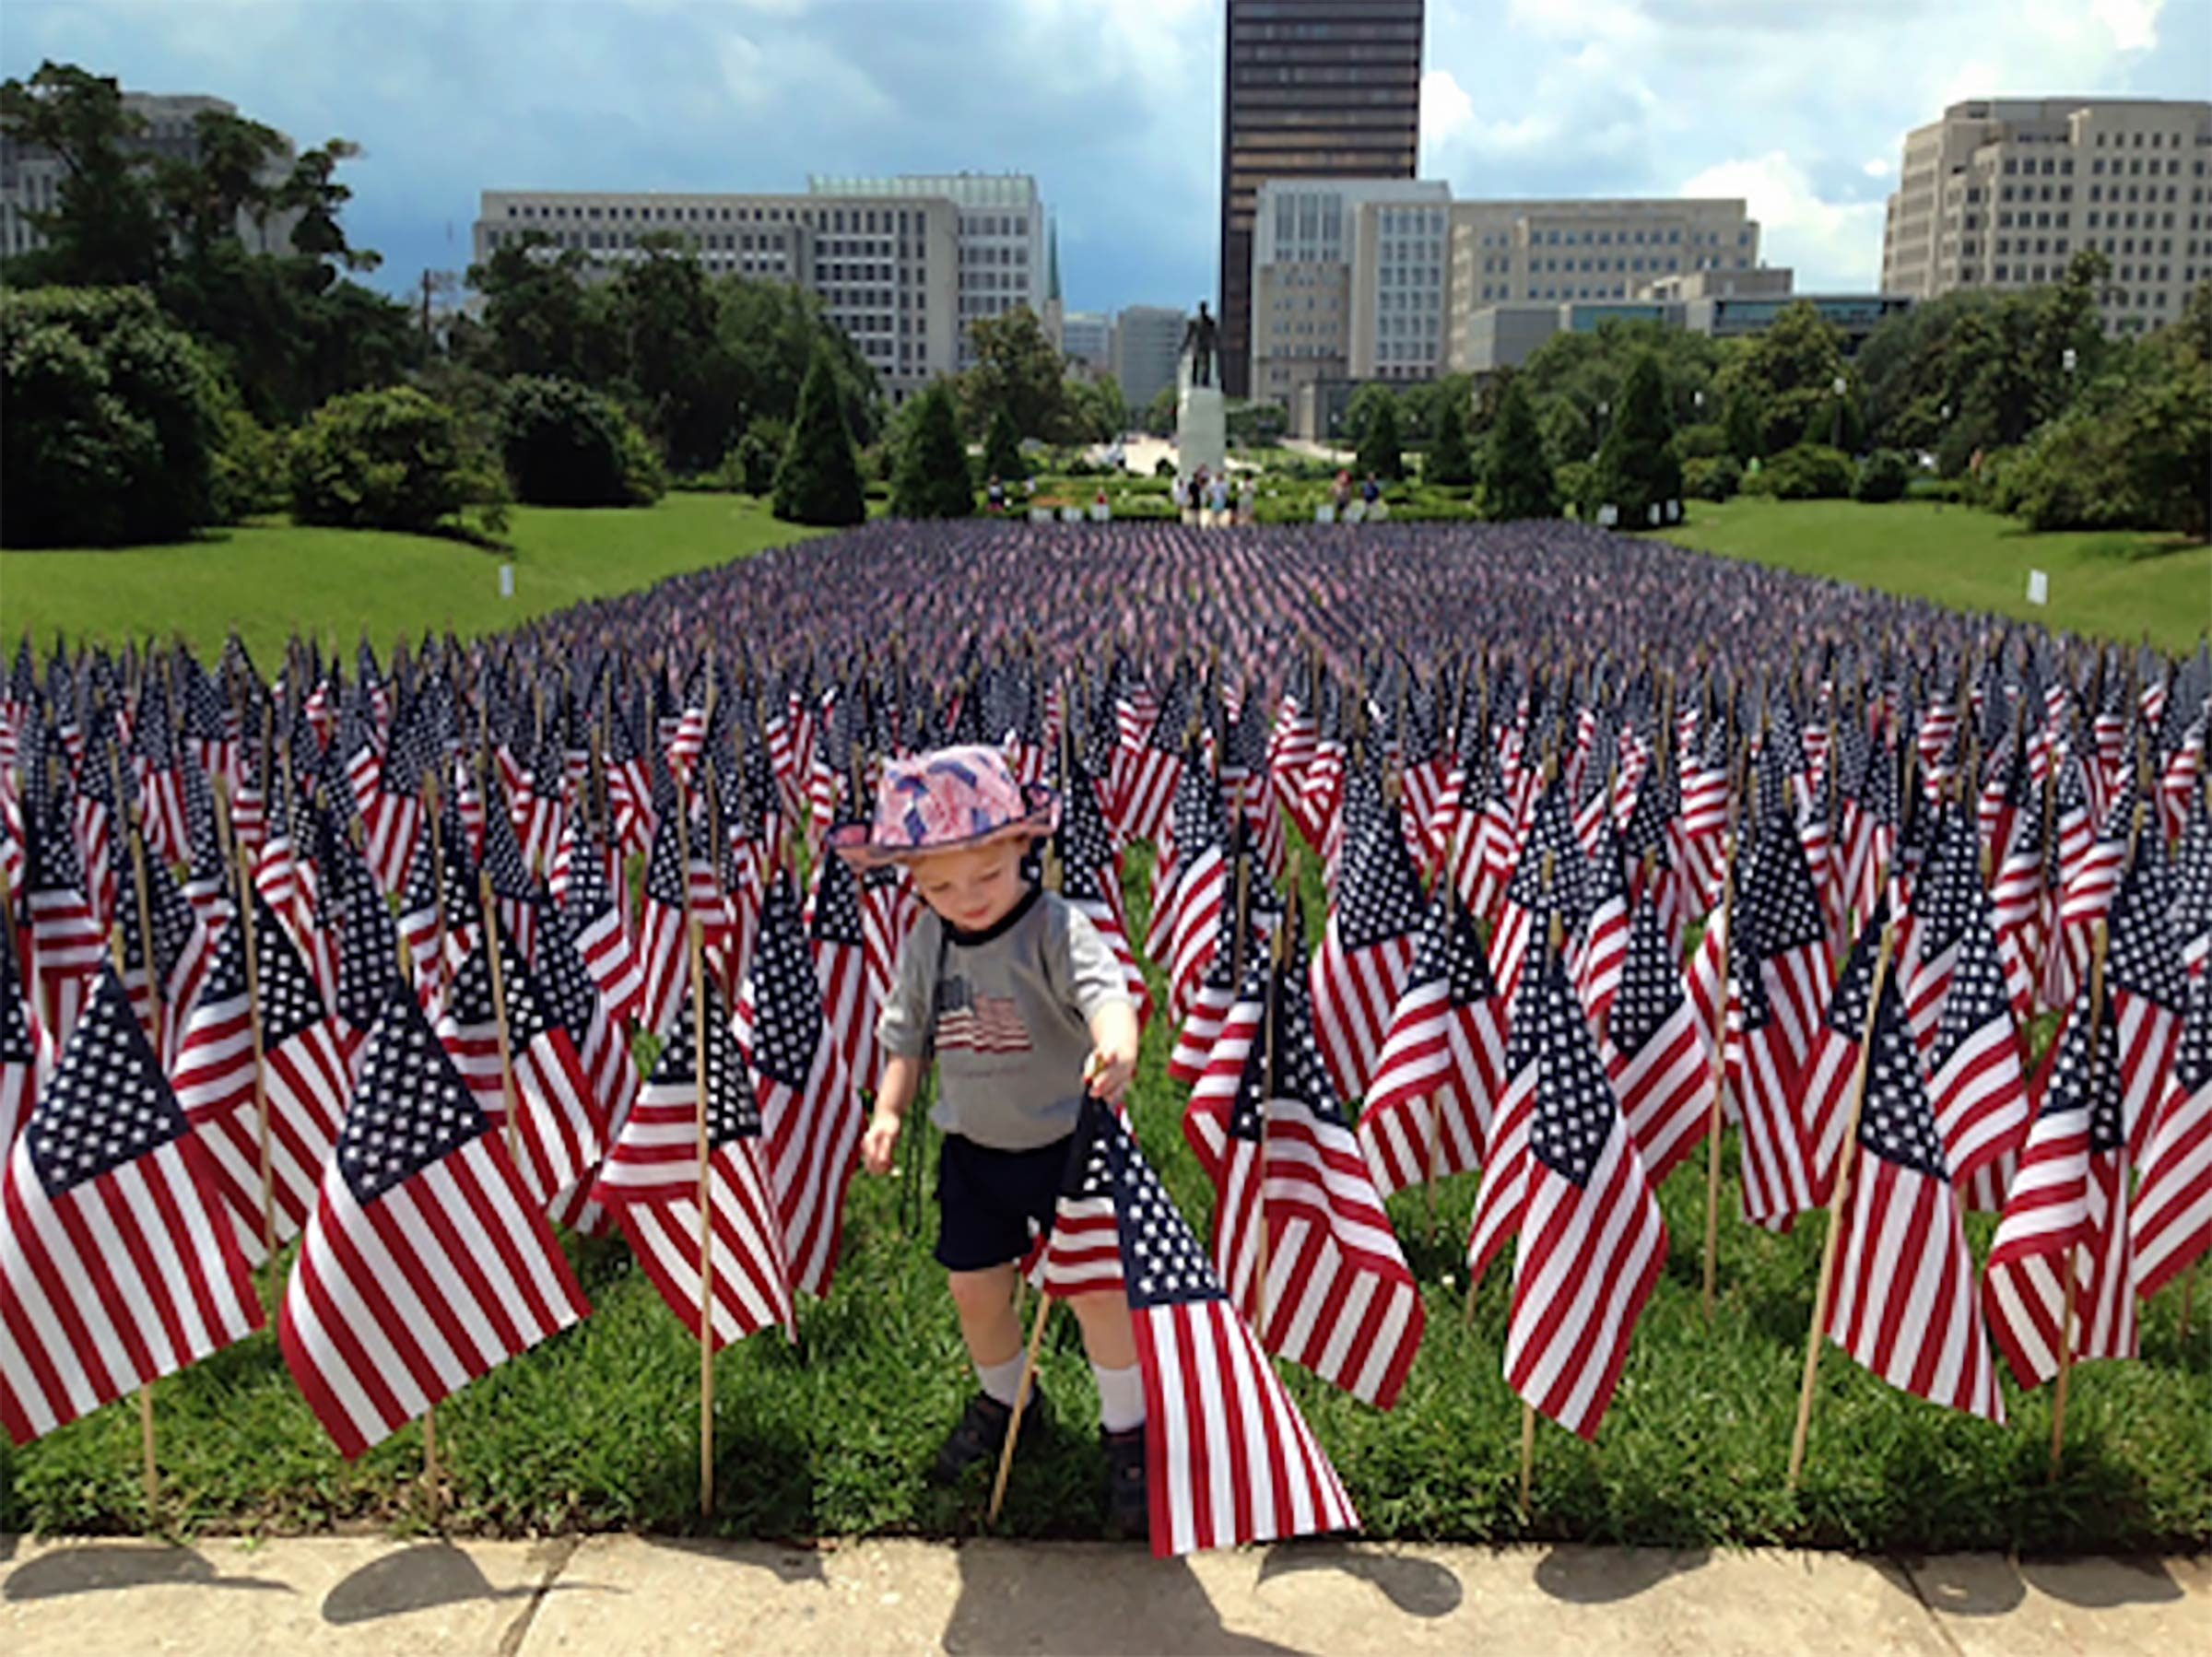 a young boy stands among a field of american flags and reaches to adjust one that is leaning; Zachary, Louisiana